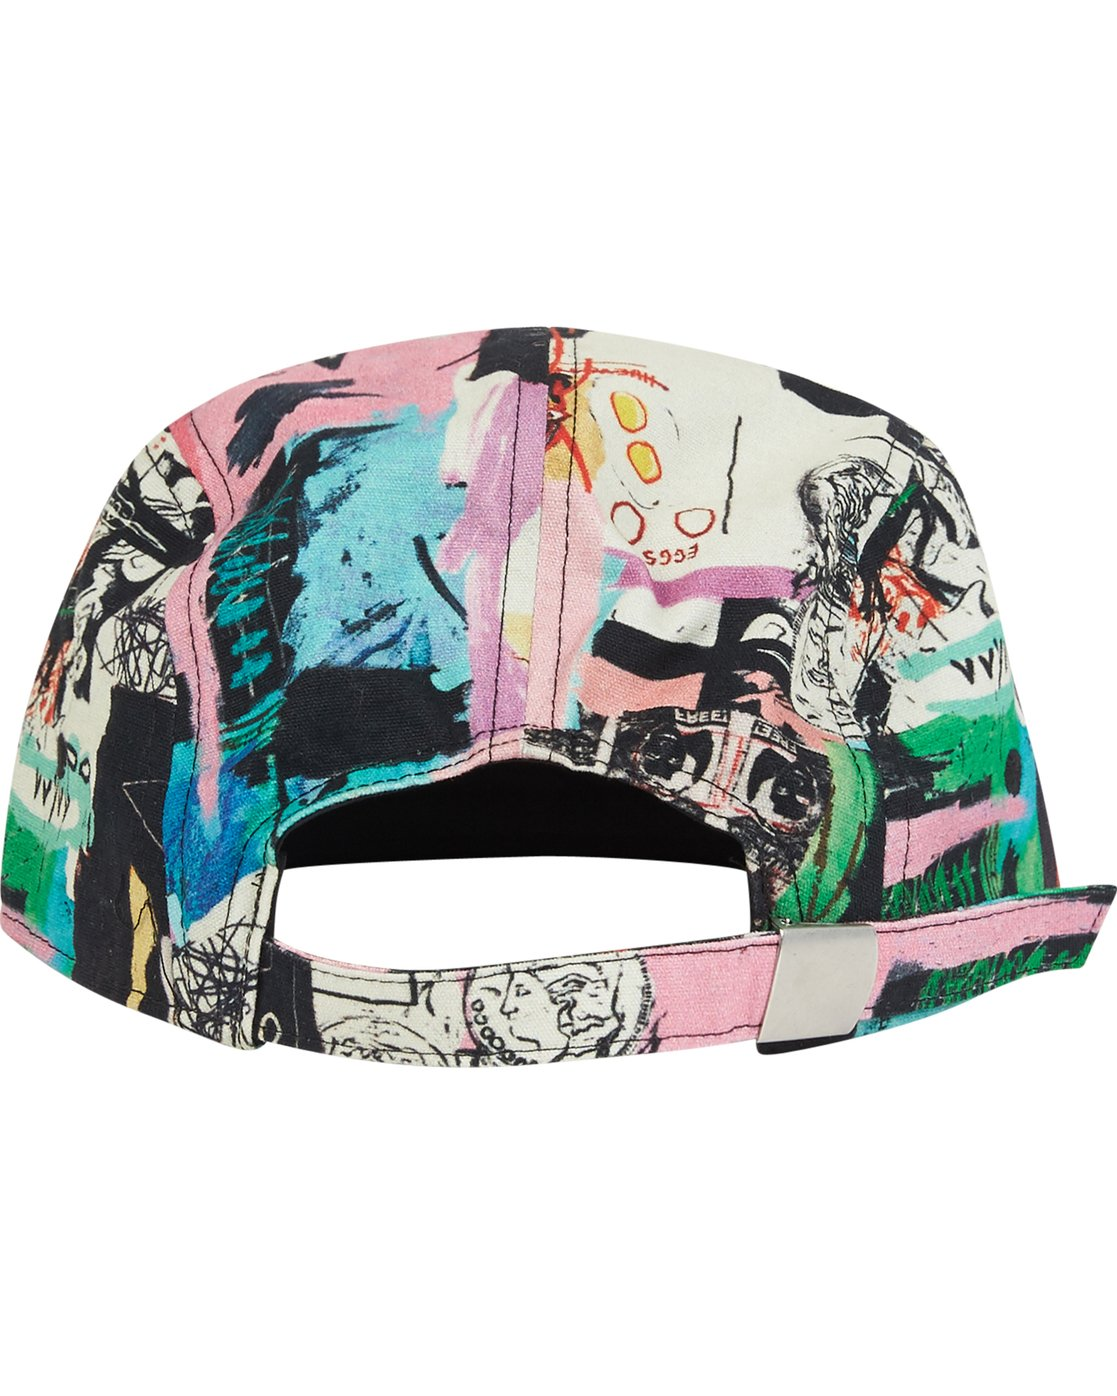 0e4a293bc98 ... shopping 2 womens factory 5 panel hat jahwpbba billabong b0931 be5f0